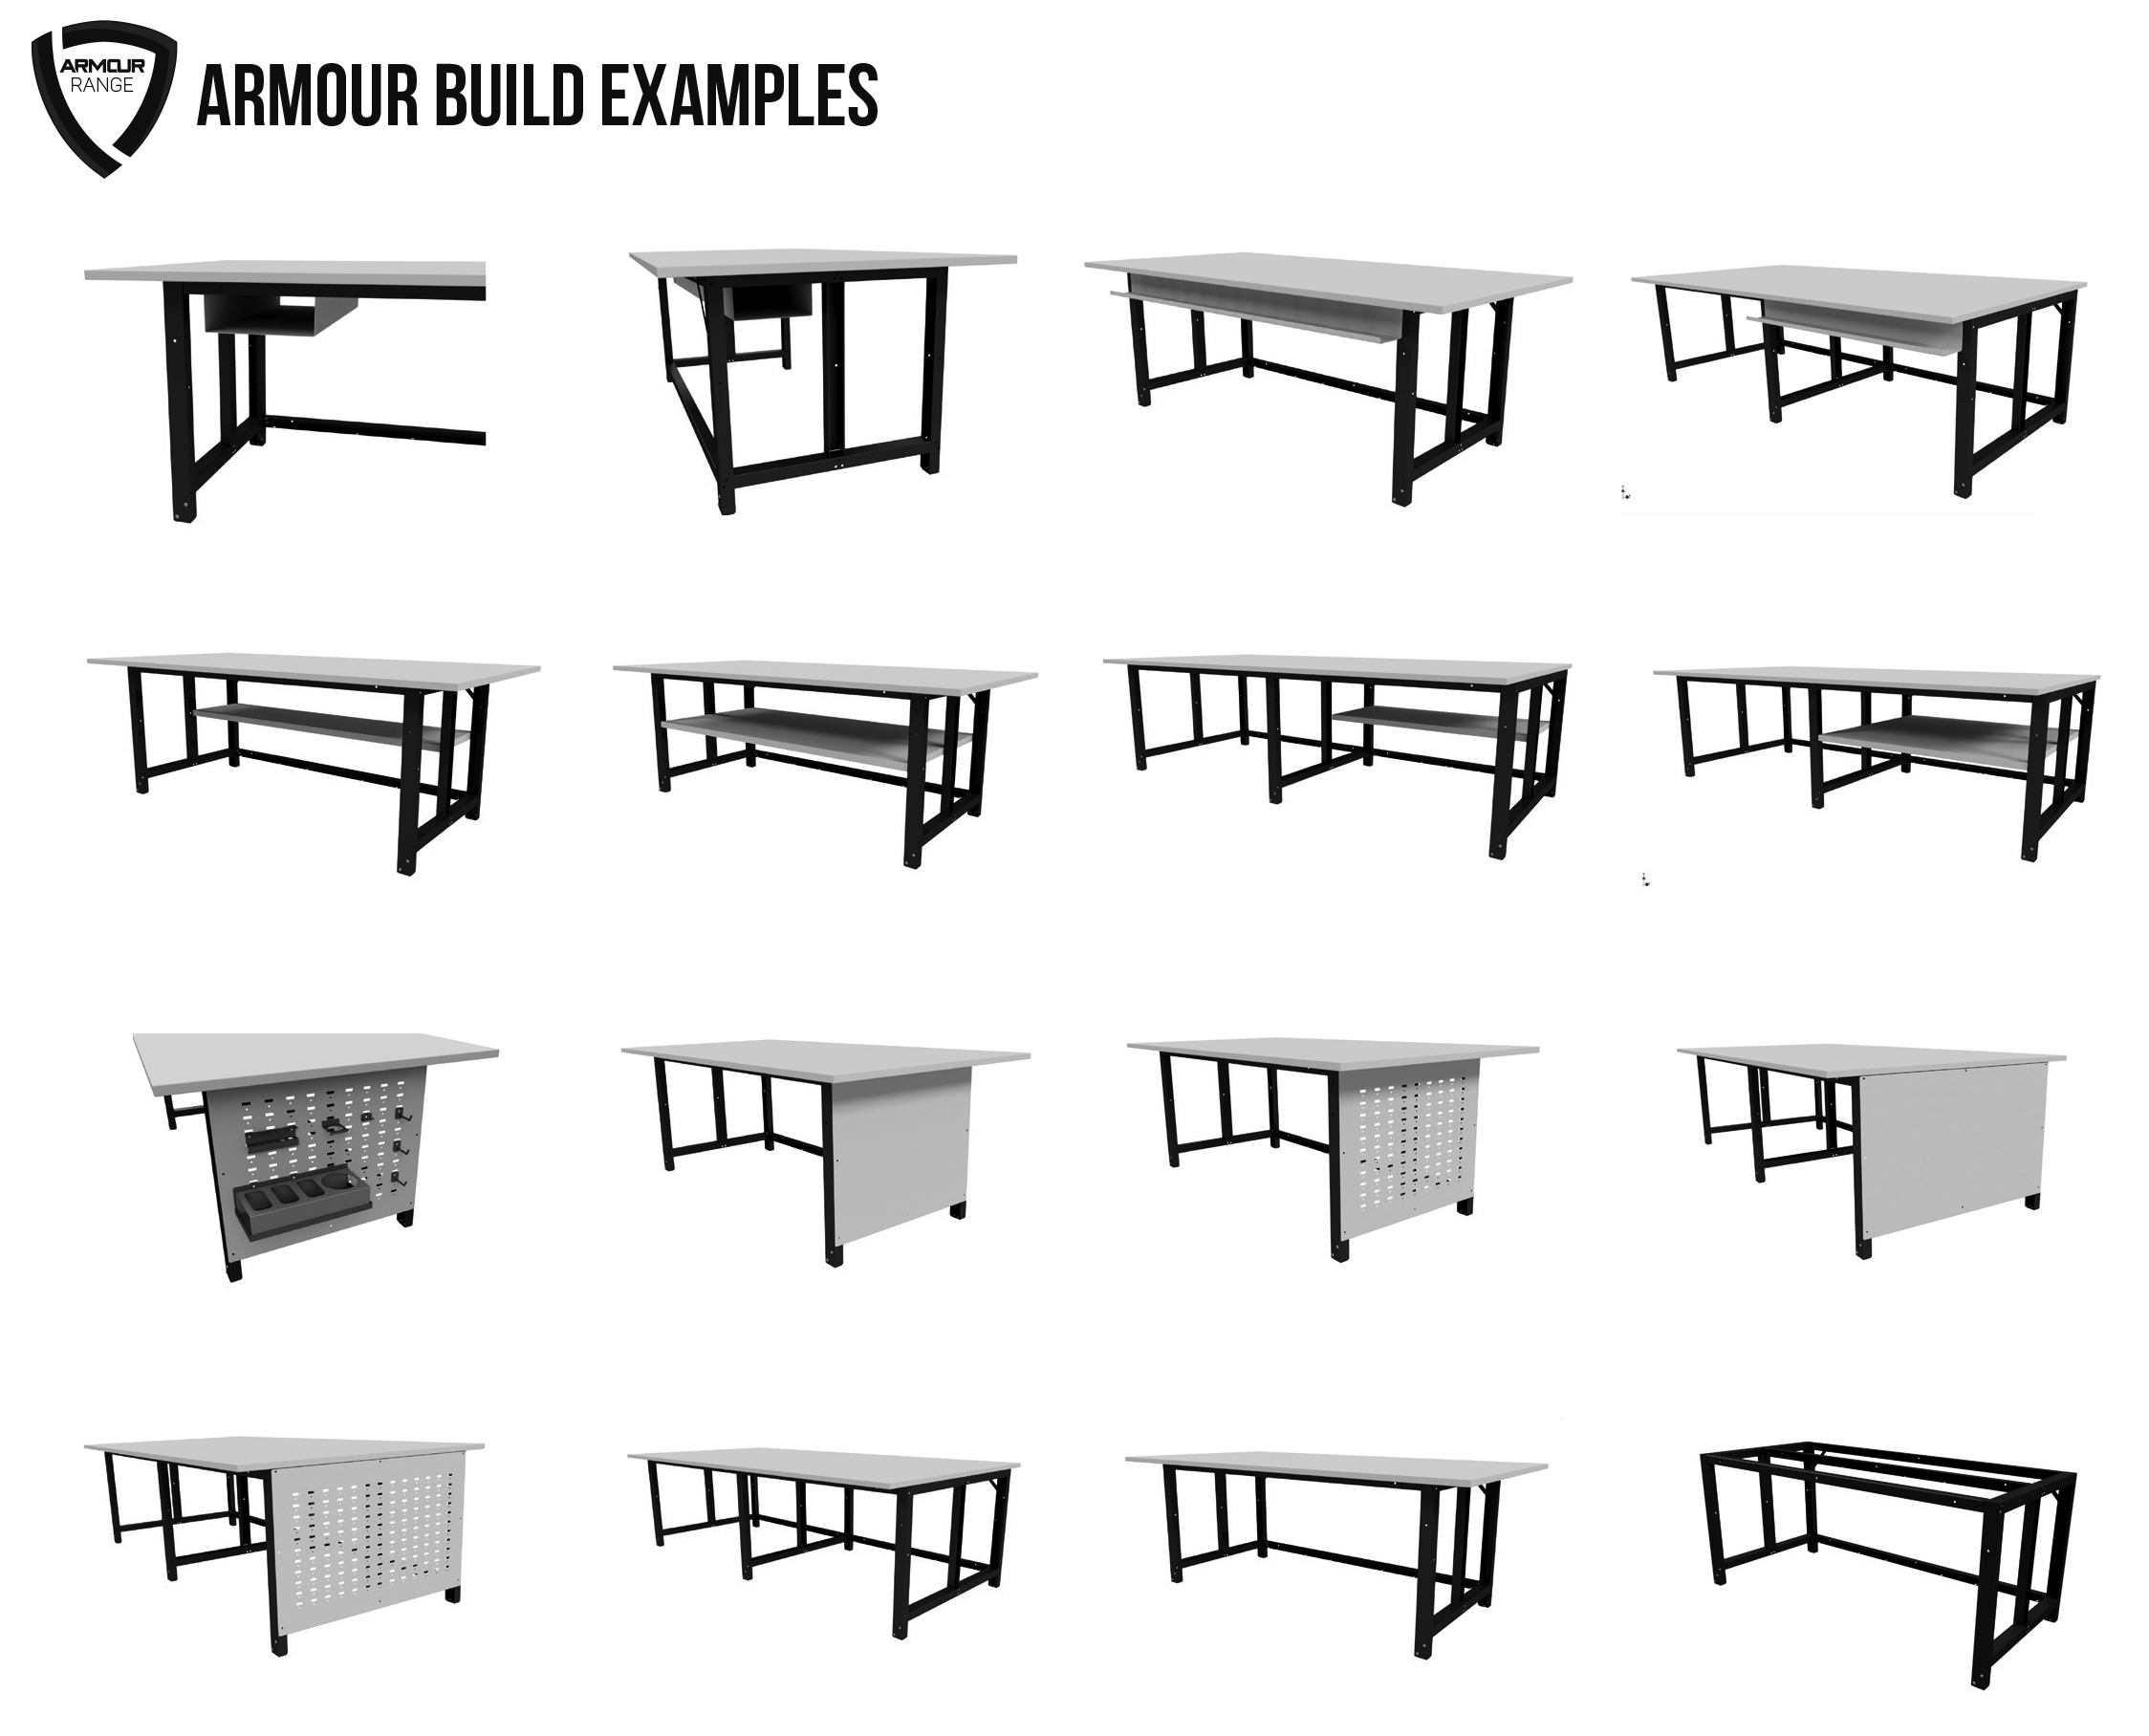 ARMOUR Modular Work Bench Build Examples